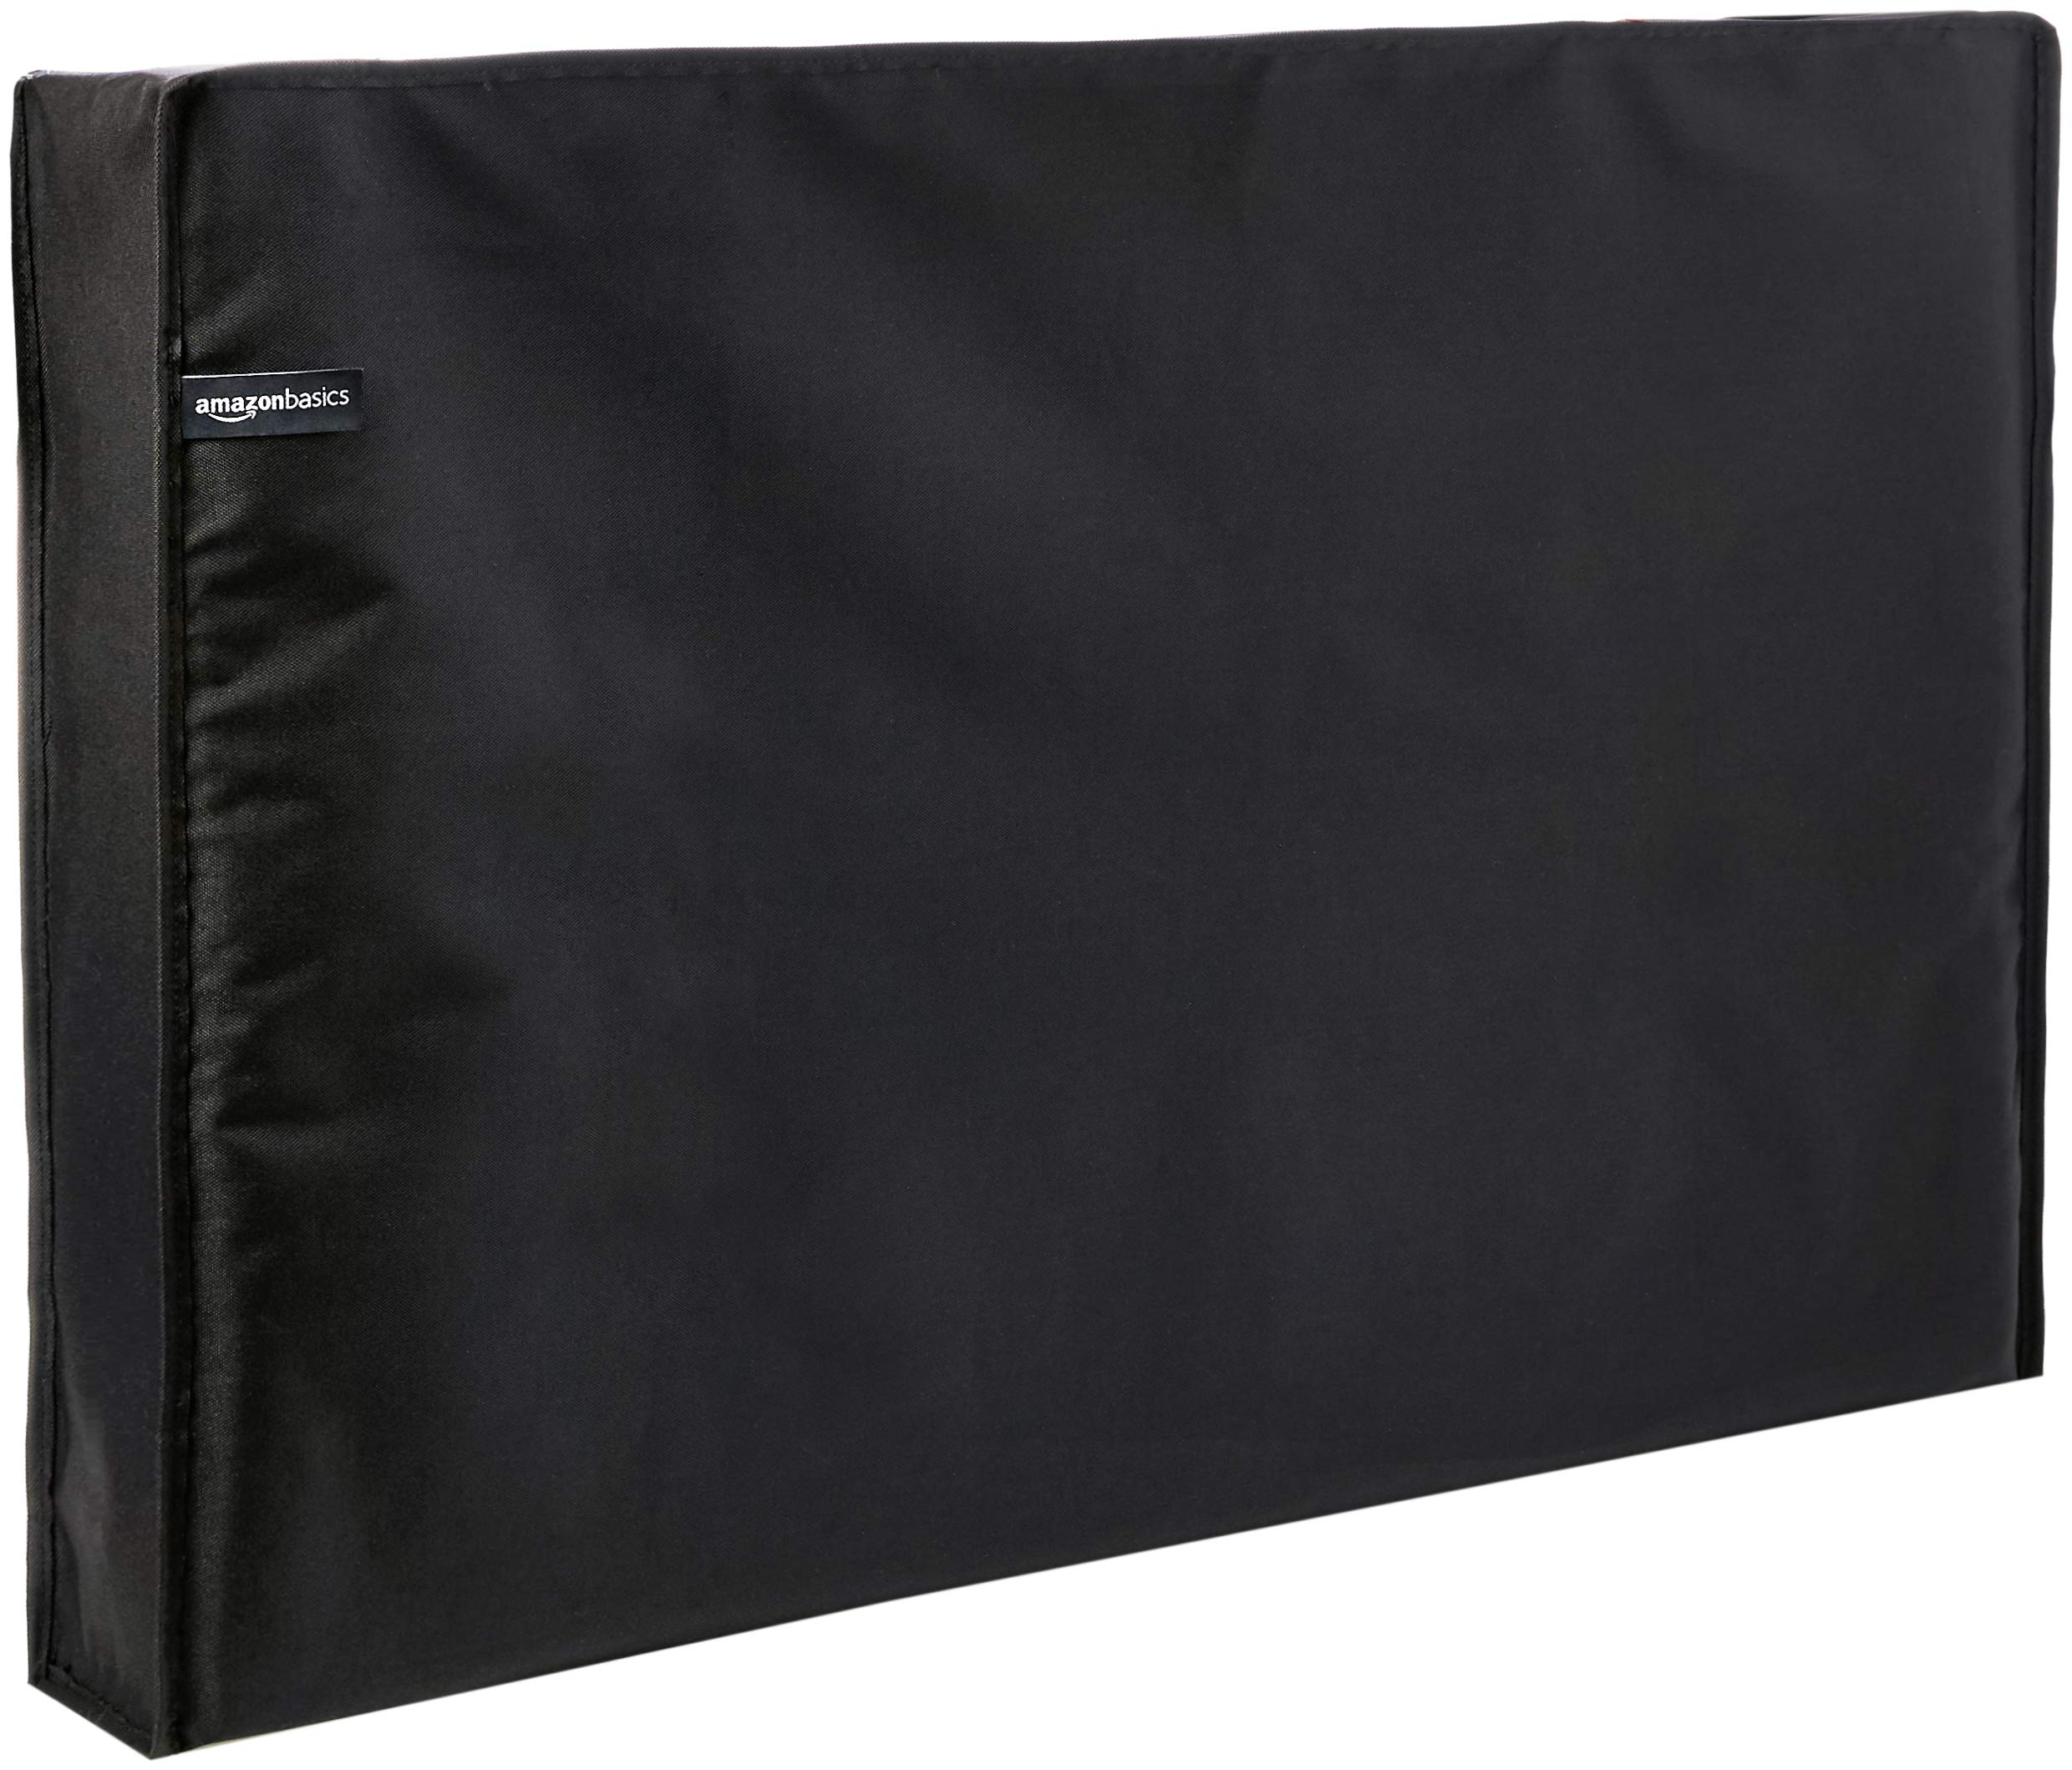 AmazonBasics Outdoor Waterproof and Weatherproof TV Cover - 60 to 65 inches